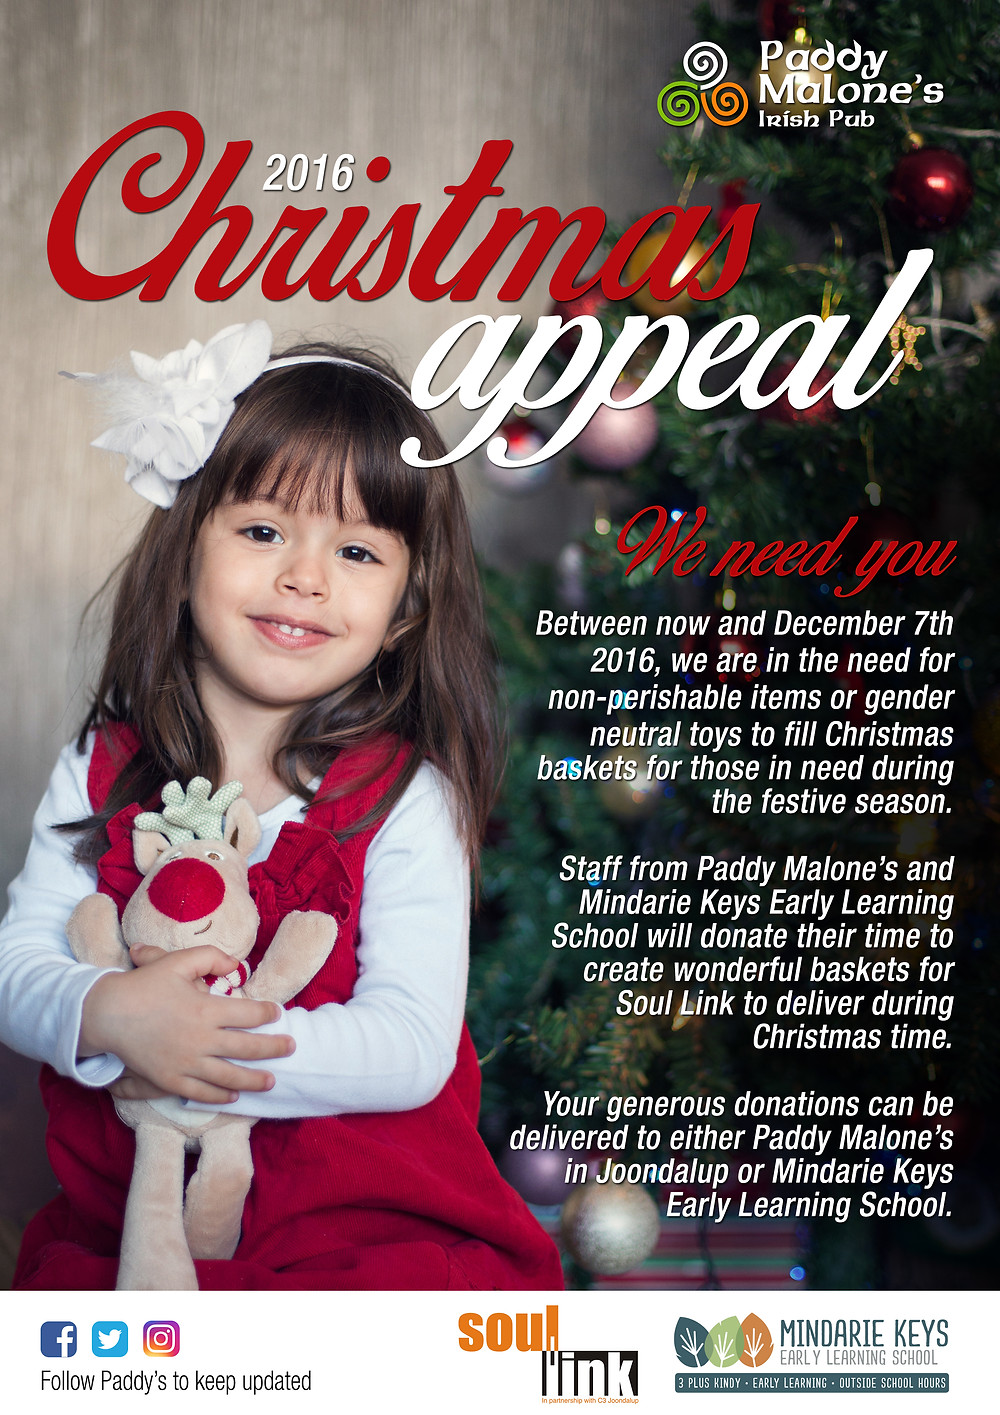 Please help Paddy Malones and Mindarie Keys Early Learning School collect non perishables and gender neautral toys to help make baskets to brighten the Christmas of those going through a hard time.